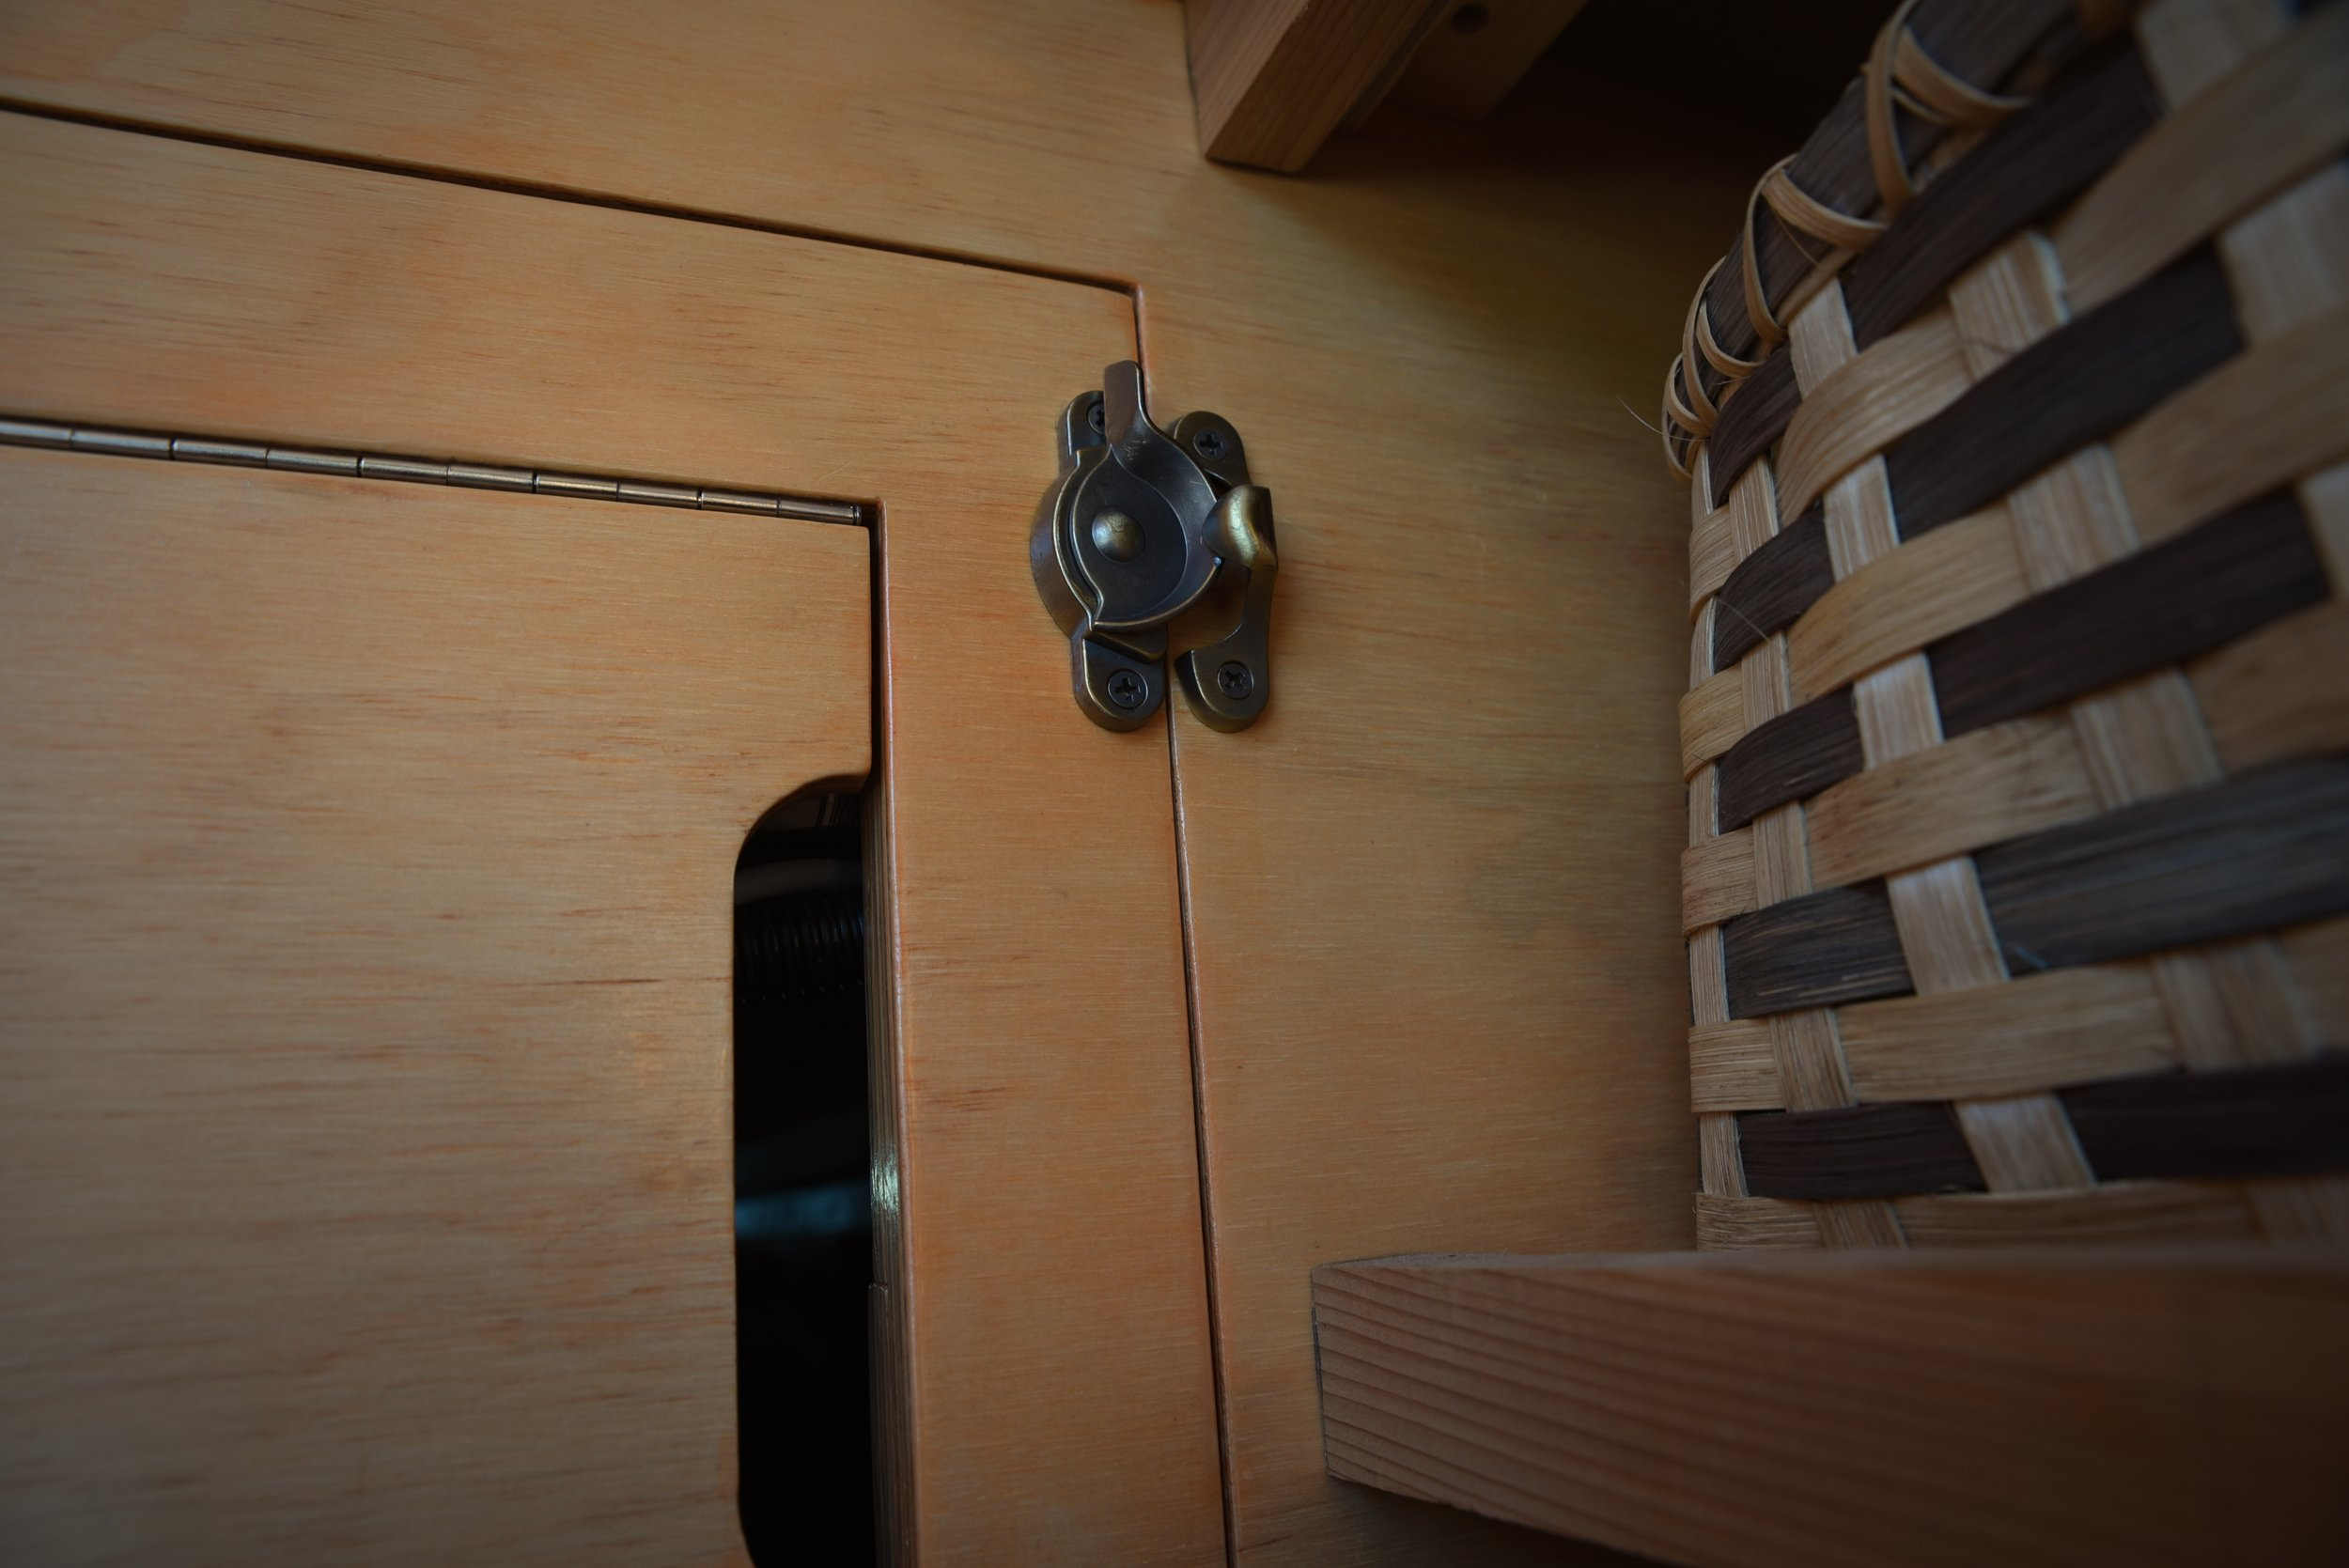 A sash lock (usually used on windows) is a stylish and latch for keeping our giant cabinet door closed while we drive, and also while we use the table.